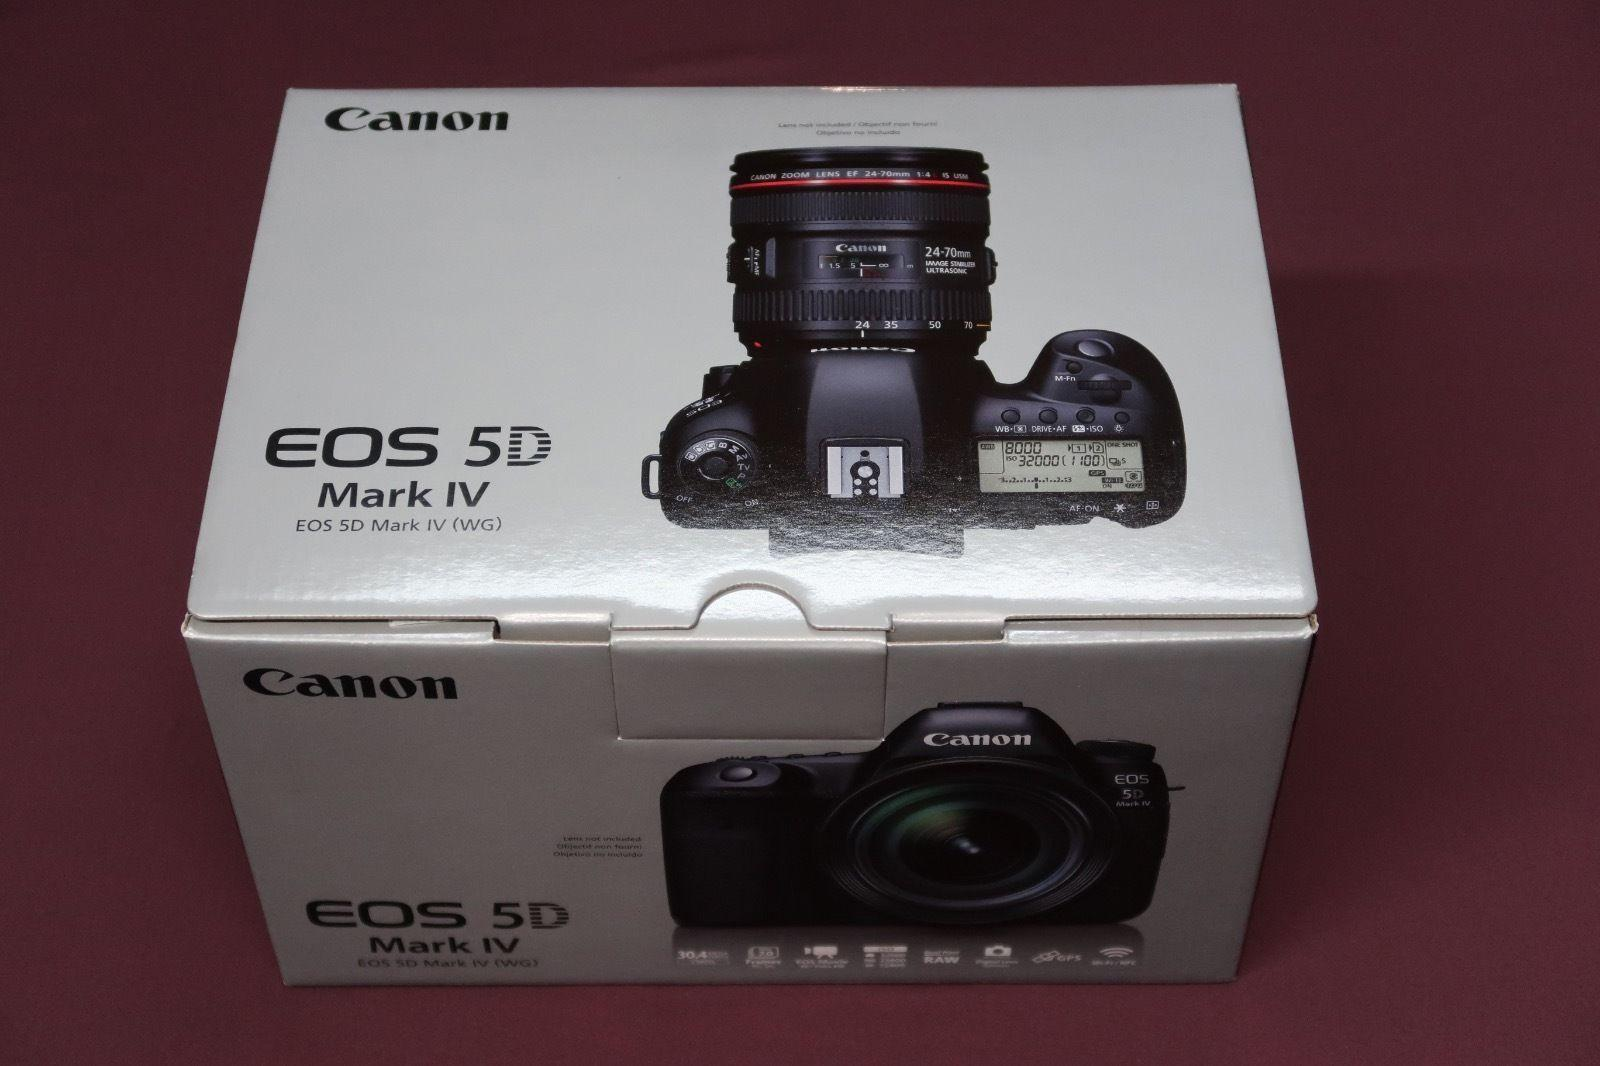 Canon EOS 5D Mark IV EF 24-105mm